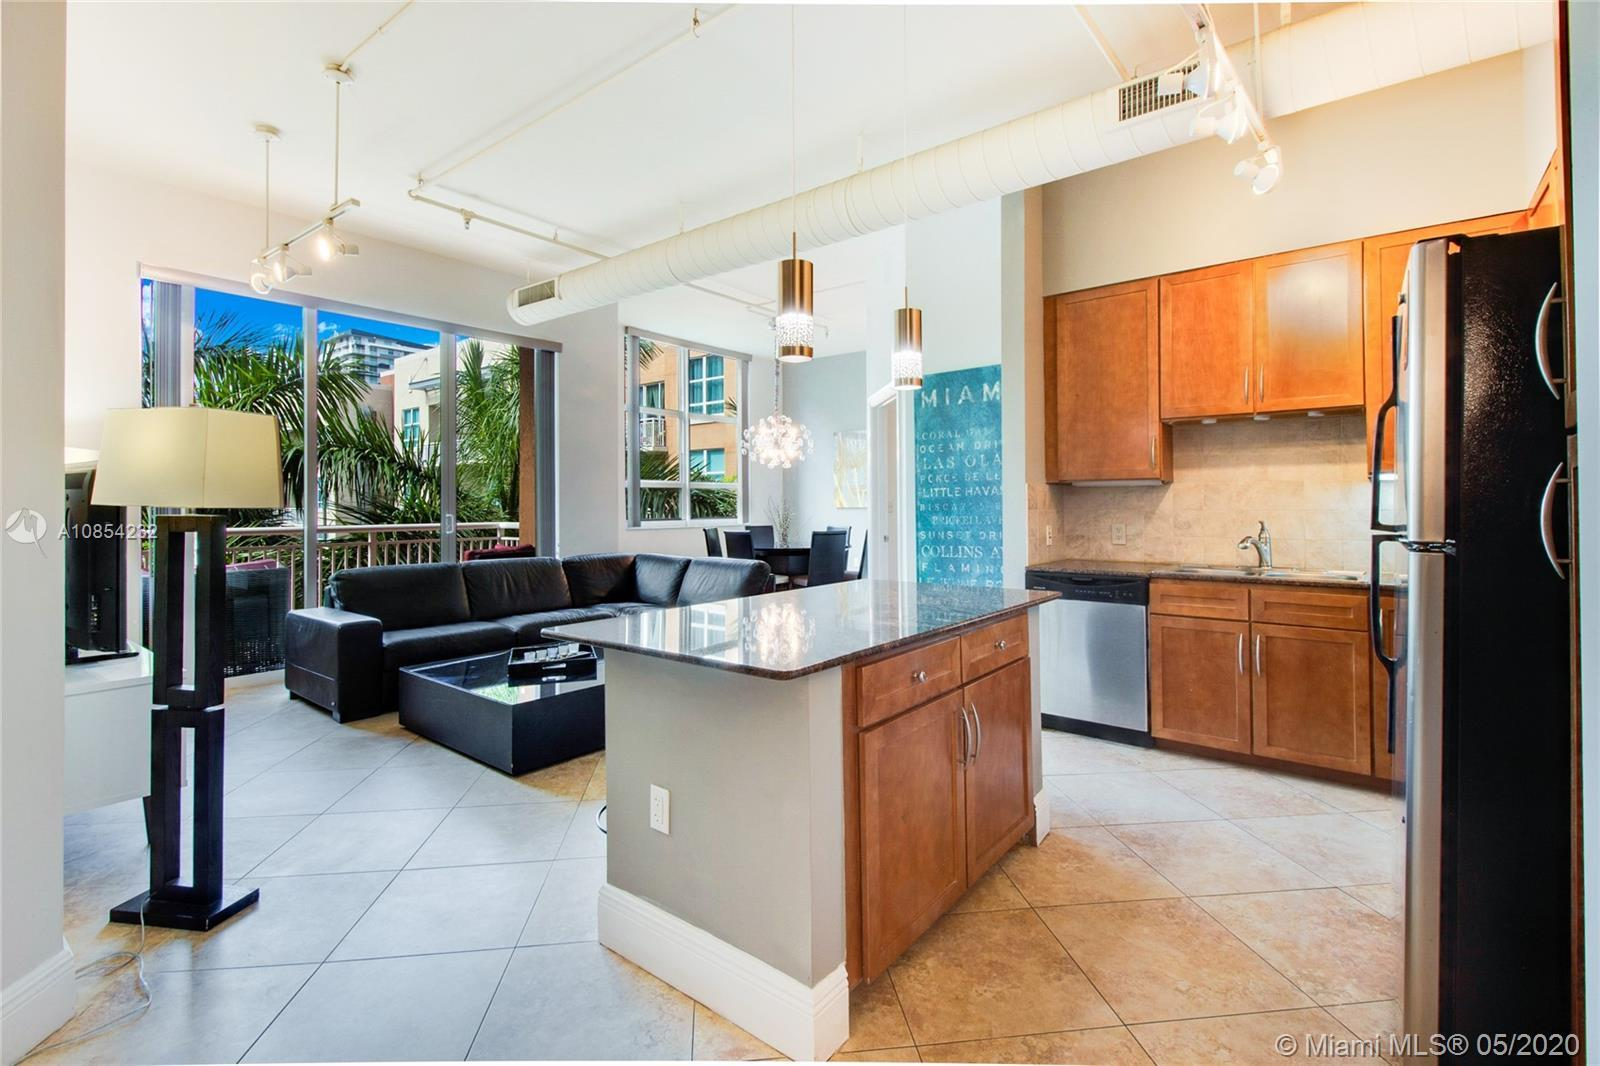 Unique 2/2 split floor NY style condo with 11' ceilings. Featuring a tropical garden. Kitchen has an